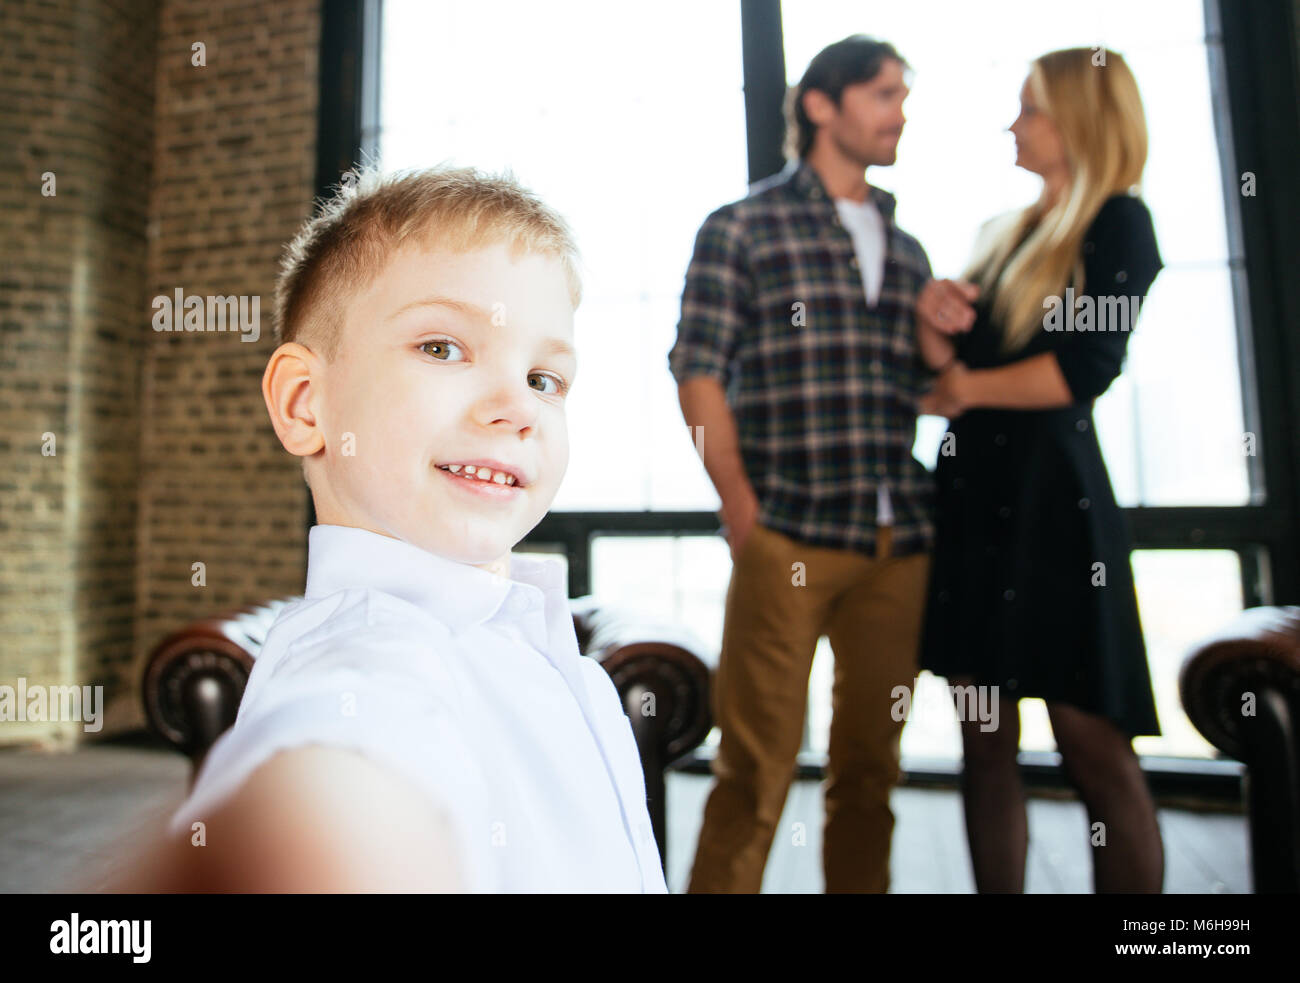 Family home portrait. Parents and son spending time together - Stock Image